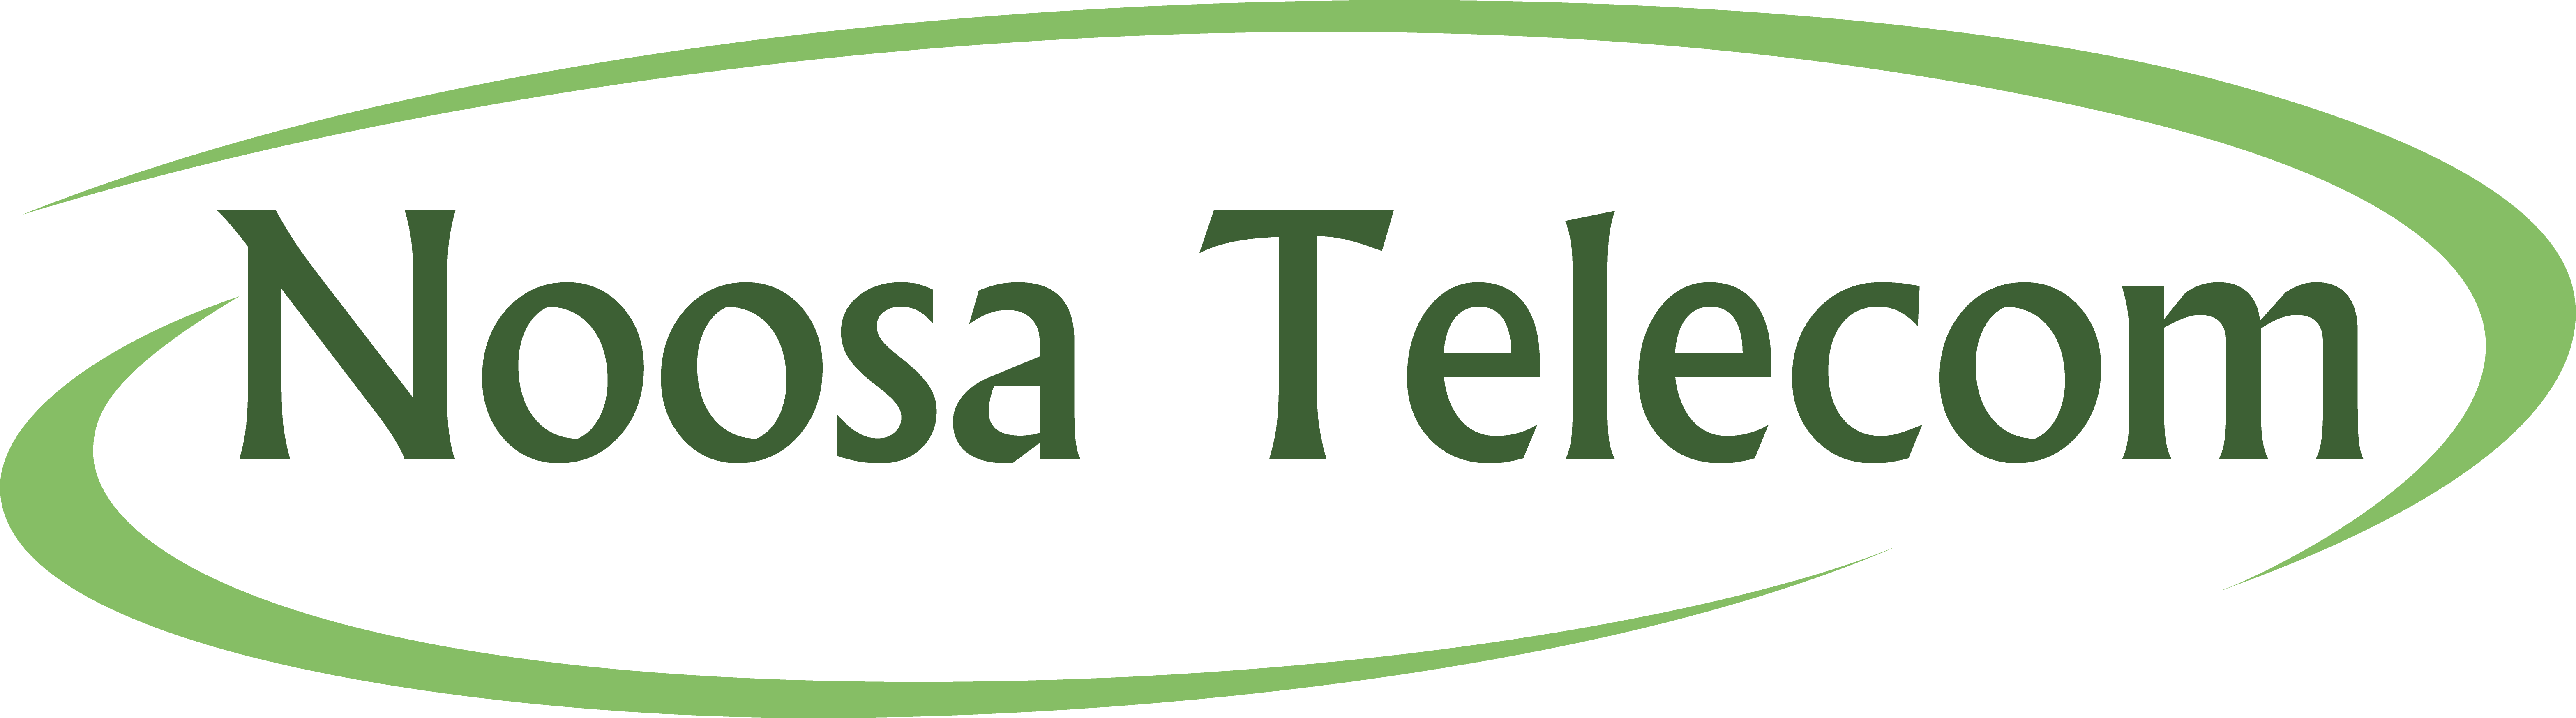 Small Business Phone Systems by Noosa Telecom Deliver Savings, Scalability, and Ease of Use for Australian SMBs